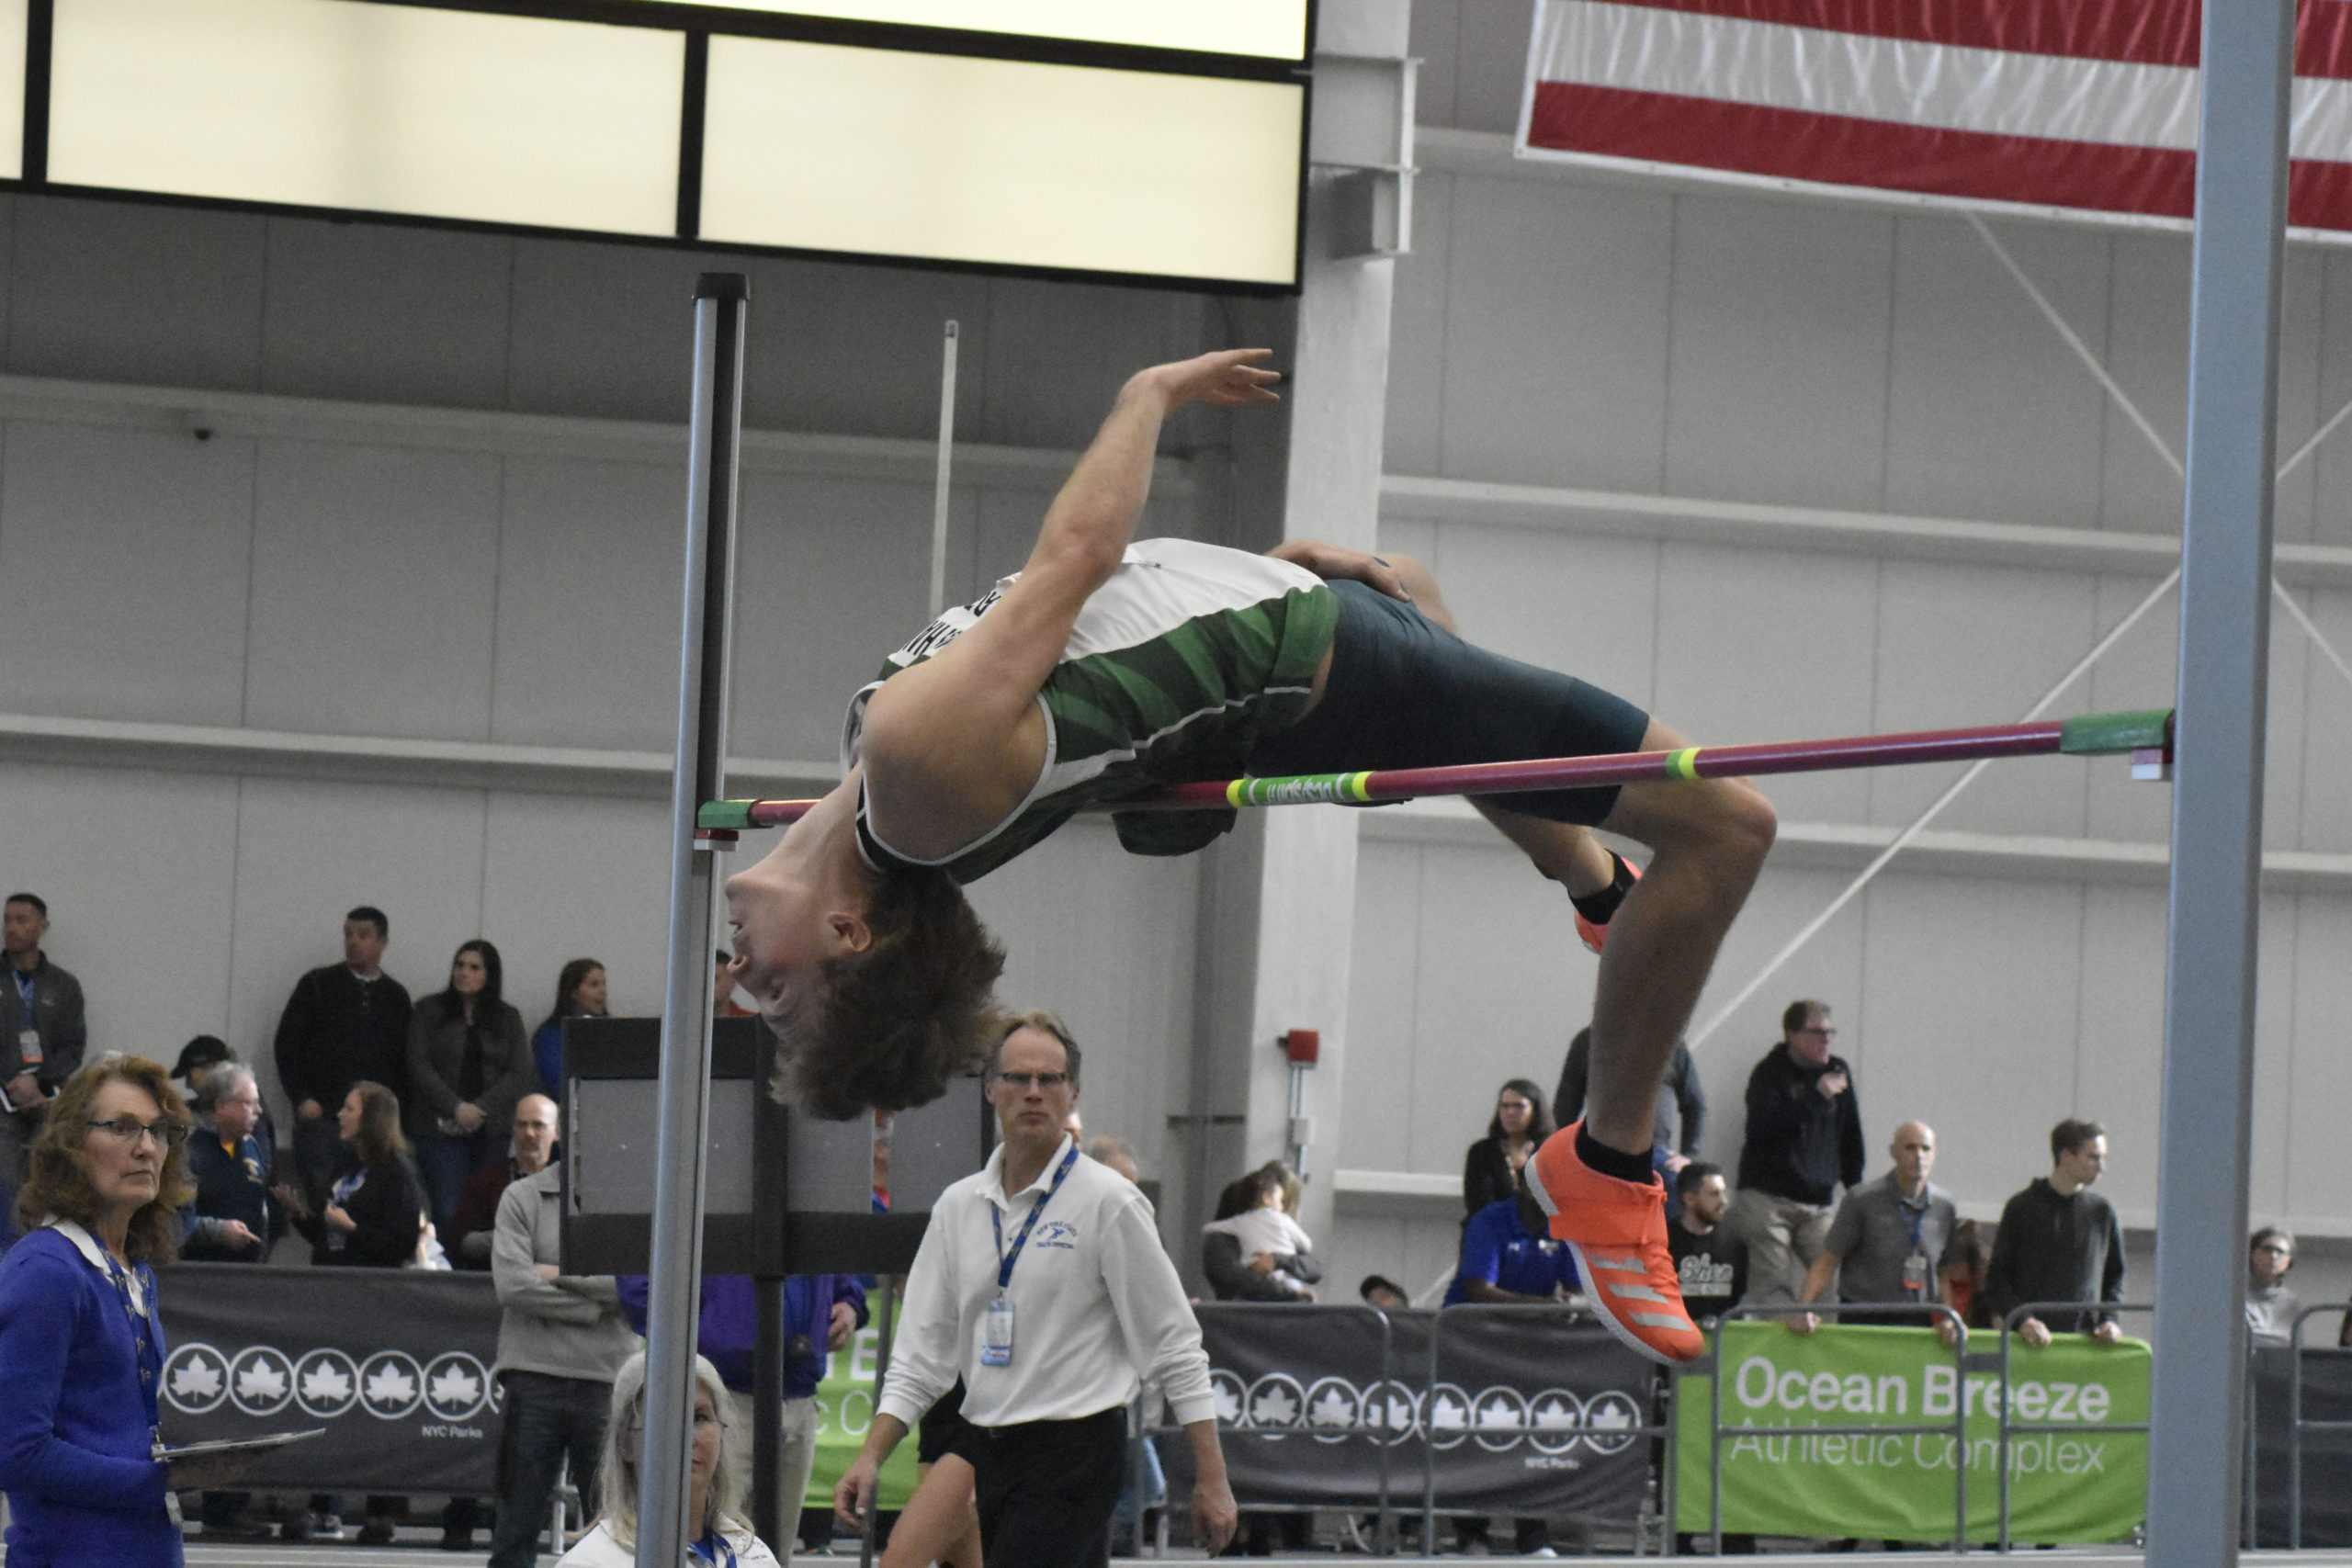 Westhampton Beach senior Jack Meigel in one of his final jumps on Saturday. He cleared 6 feet 6 inches to place third in the state.